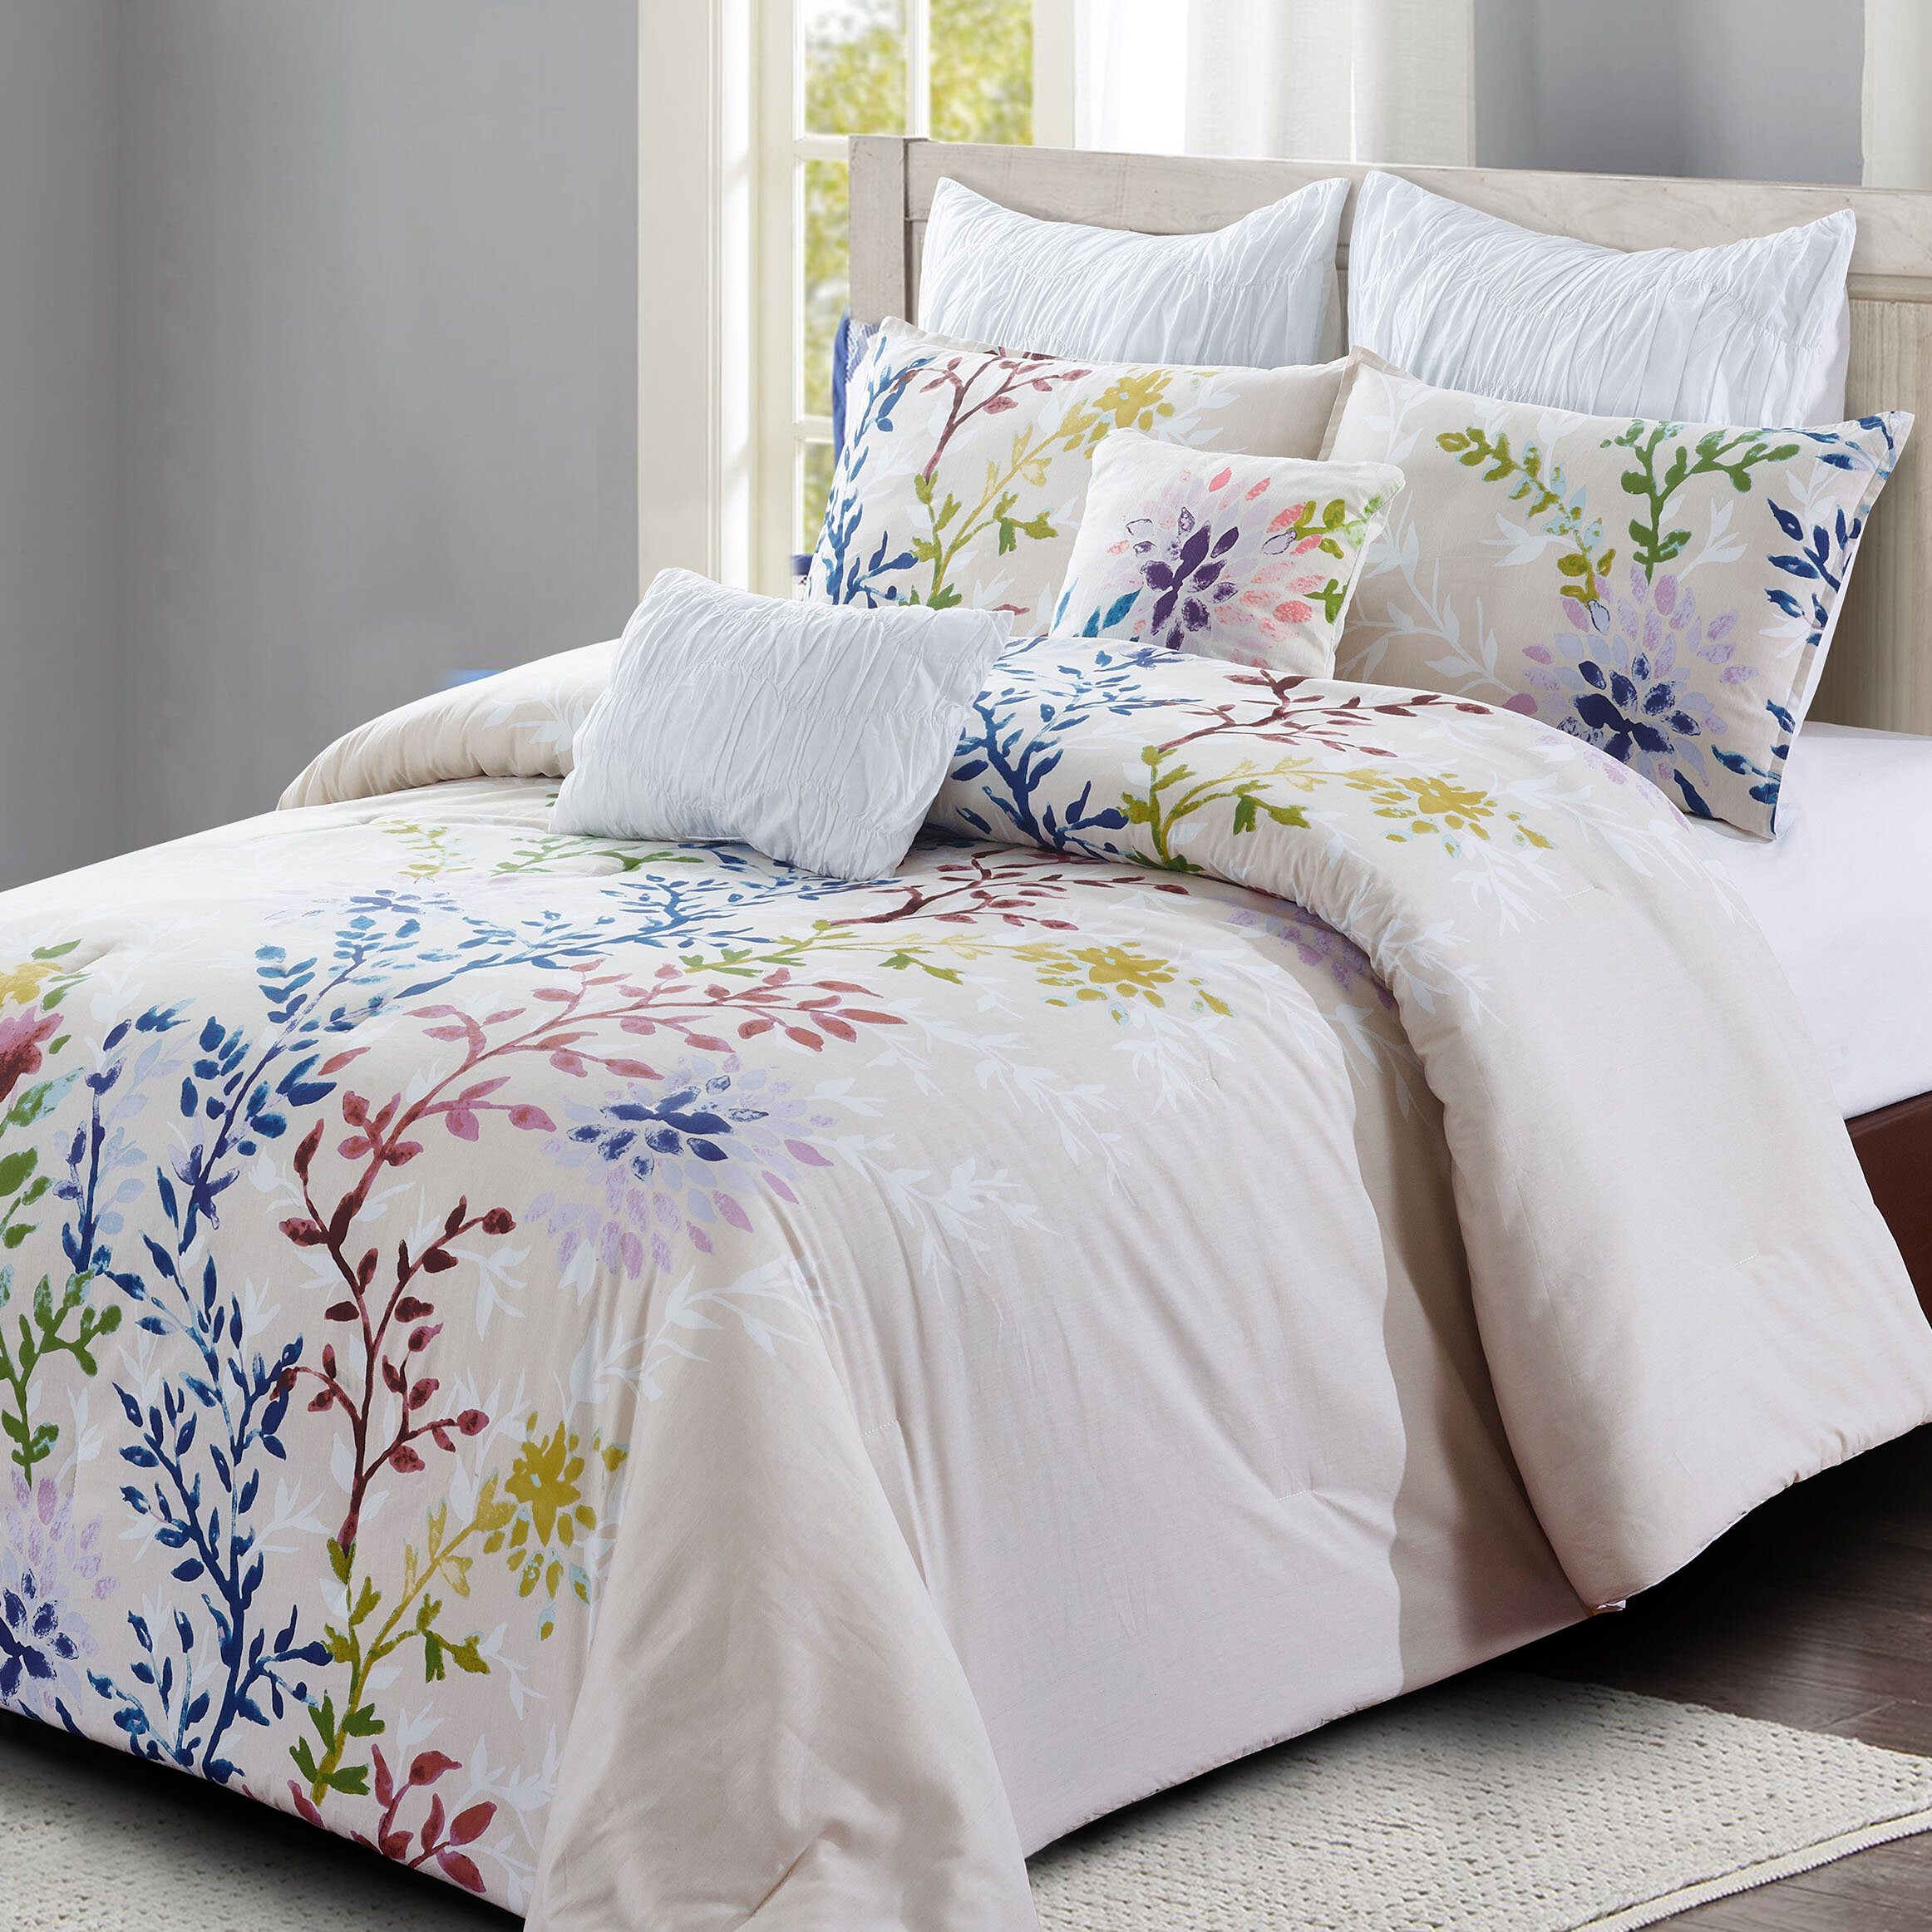 Nature Floral White Comforters Sets You Ll Love In 2021 Wayfair